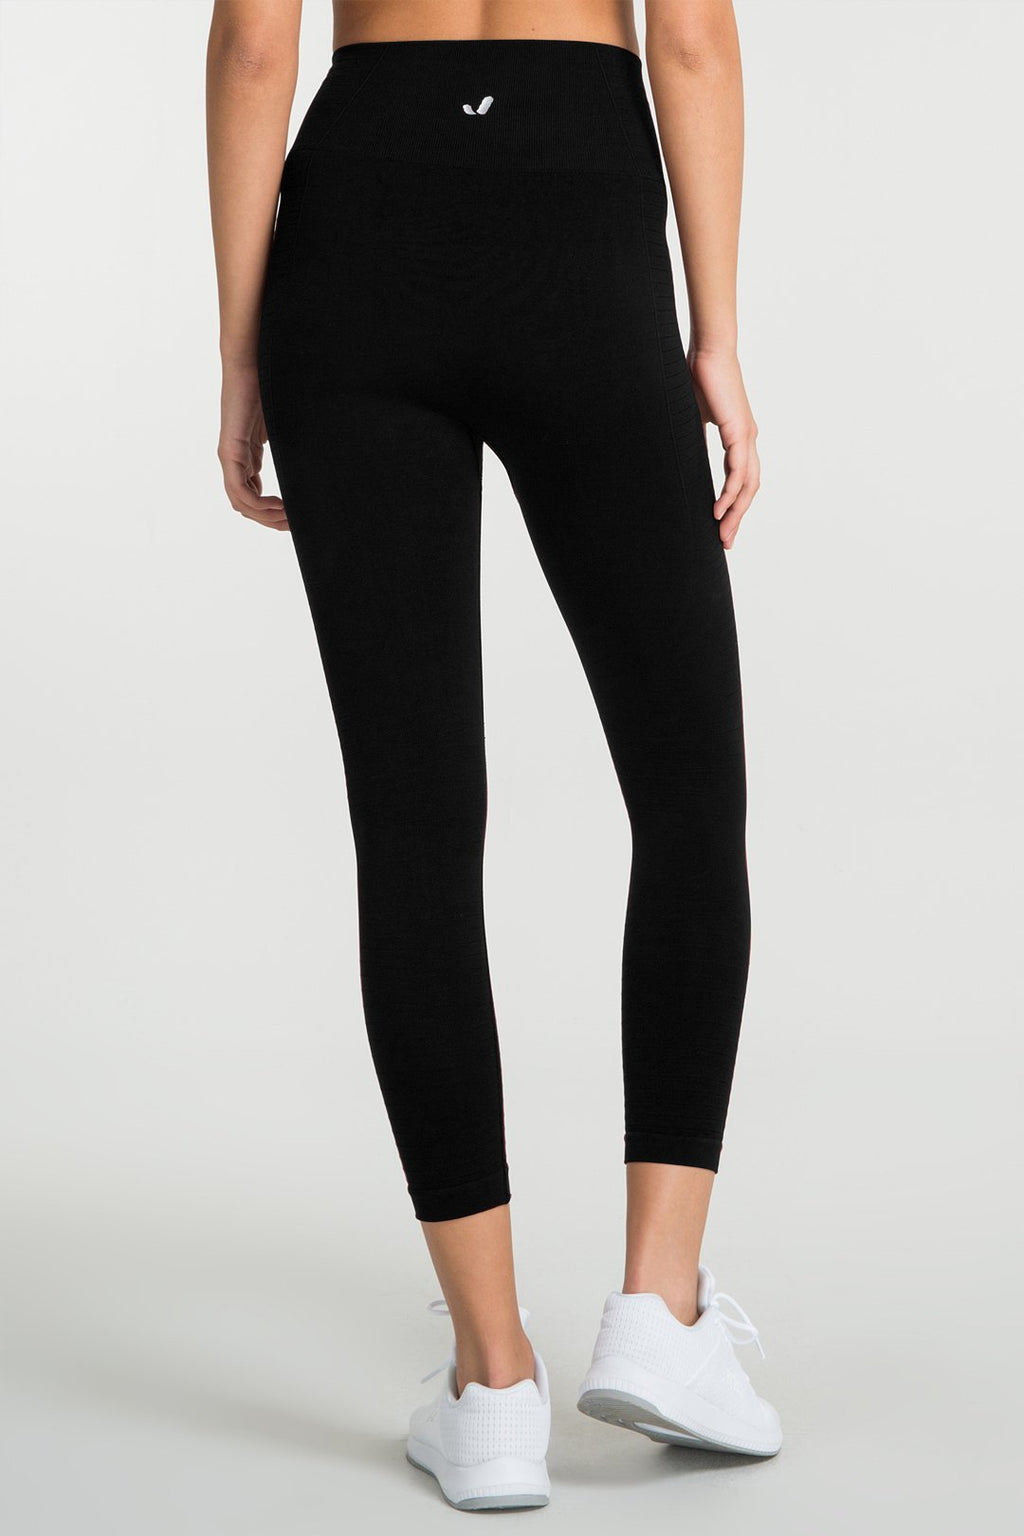 Jerf Gela Black Leggings